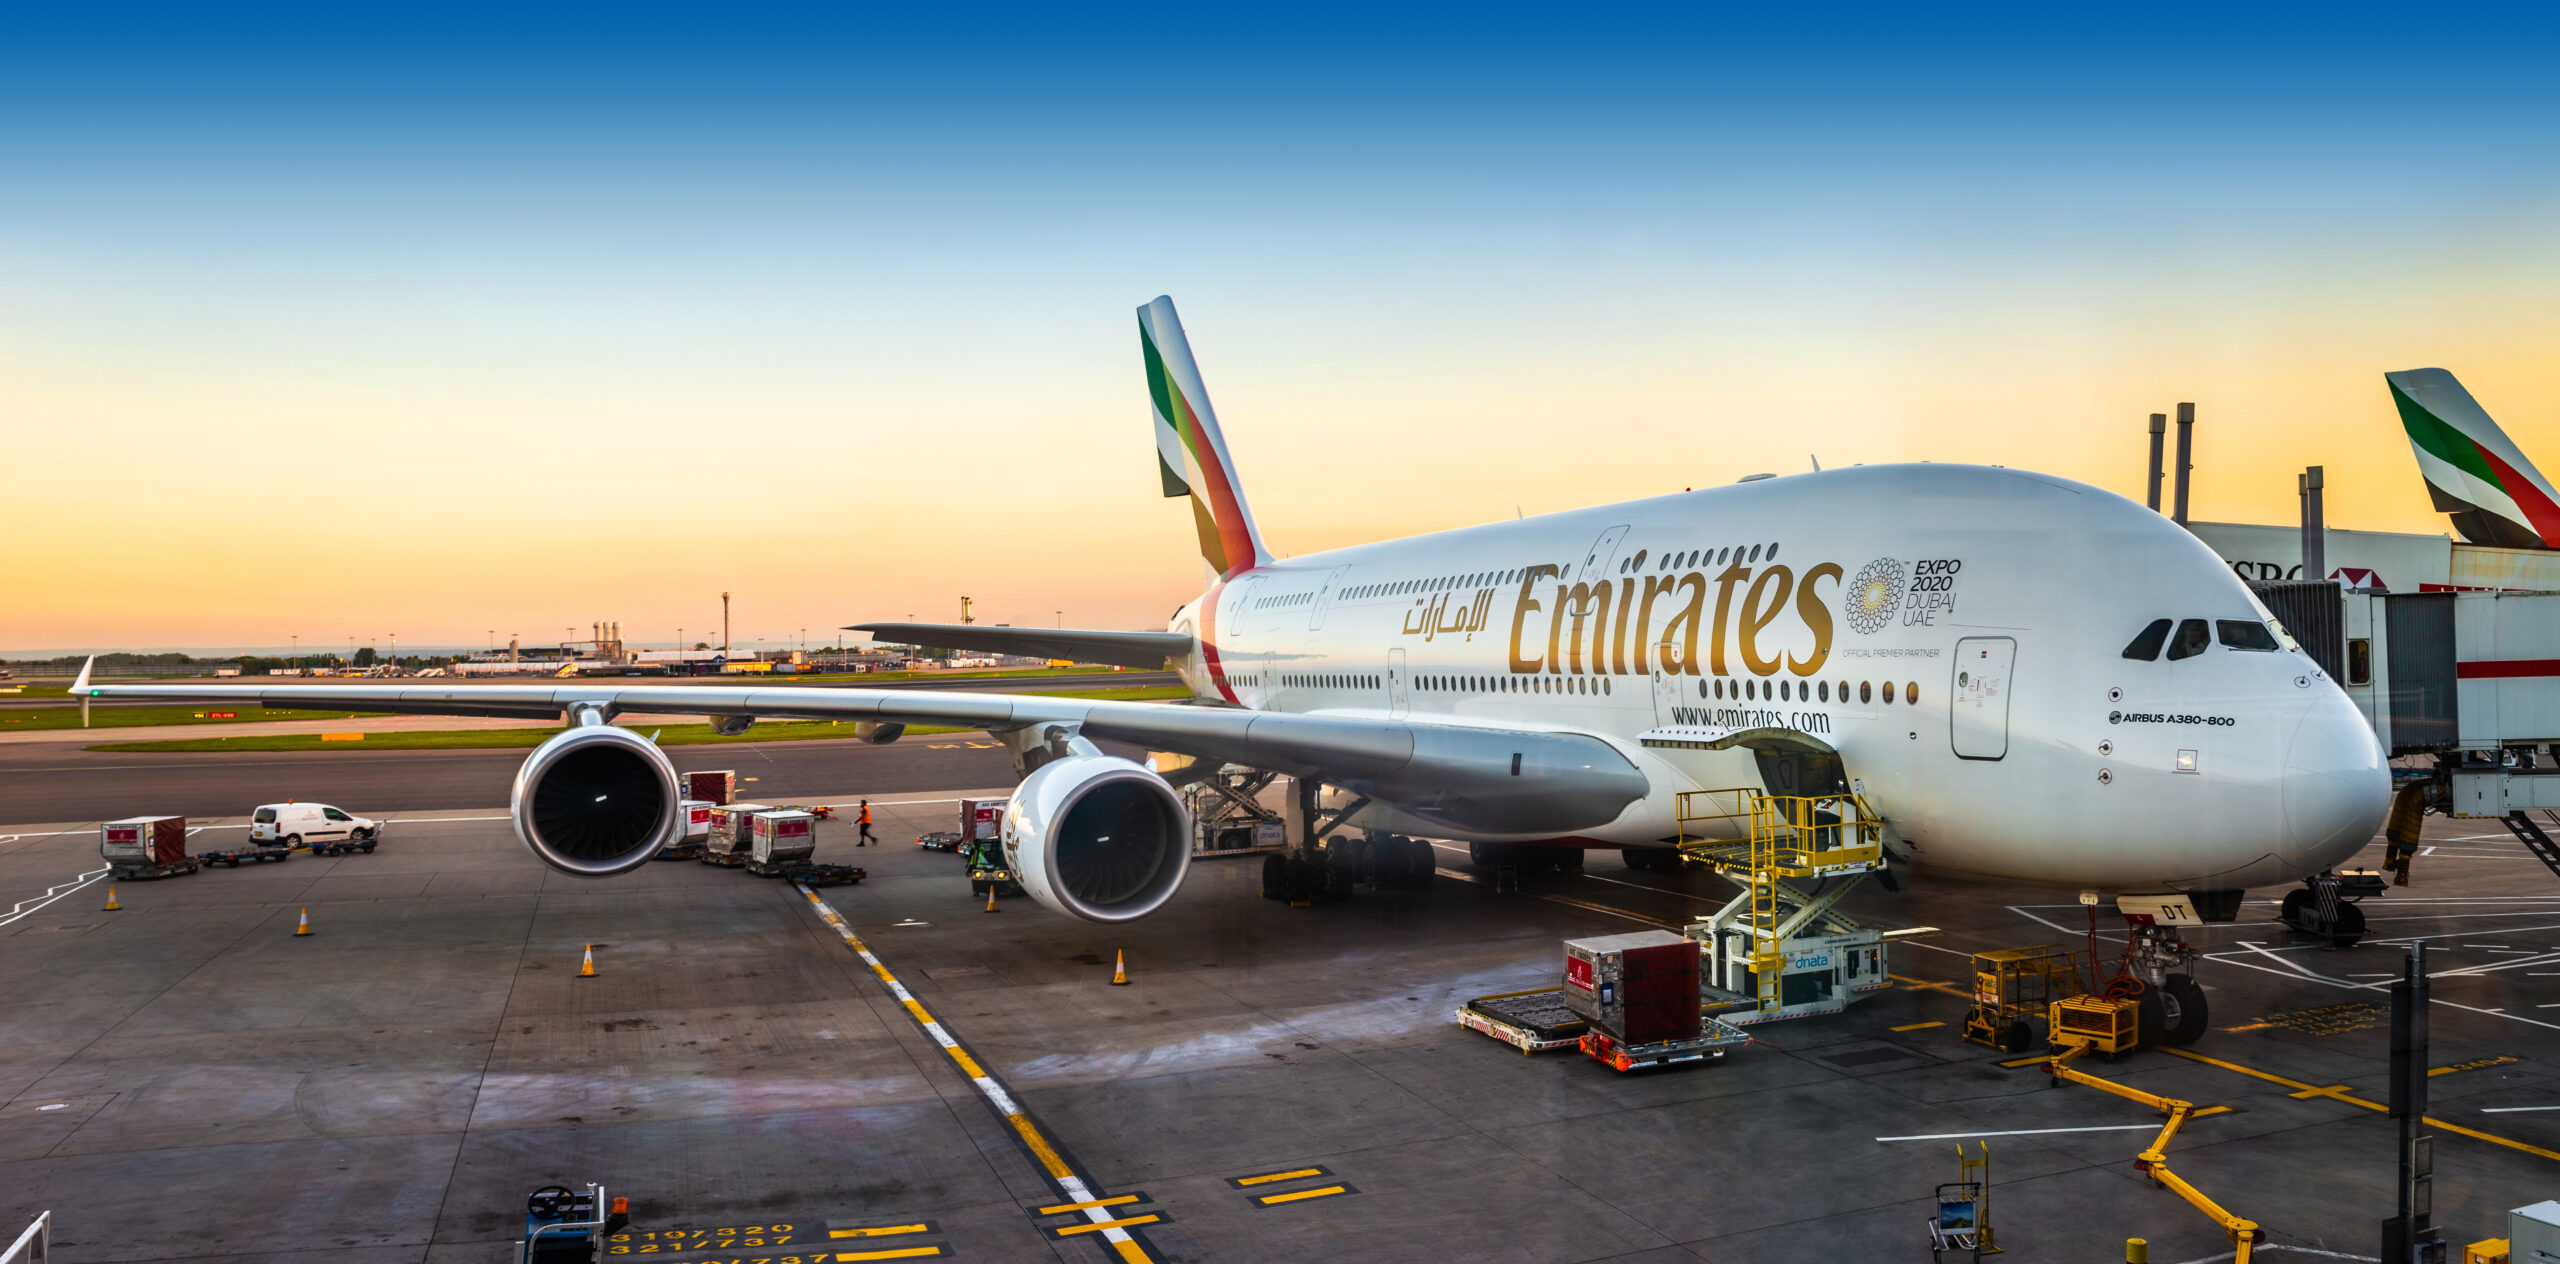 An Emirates Airbus A380-800 super jumbo, the largest passenger aircraft in the world is waiting for passengers and loading at London Heathrow terminal 3 during sunset